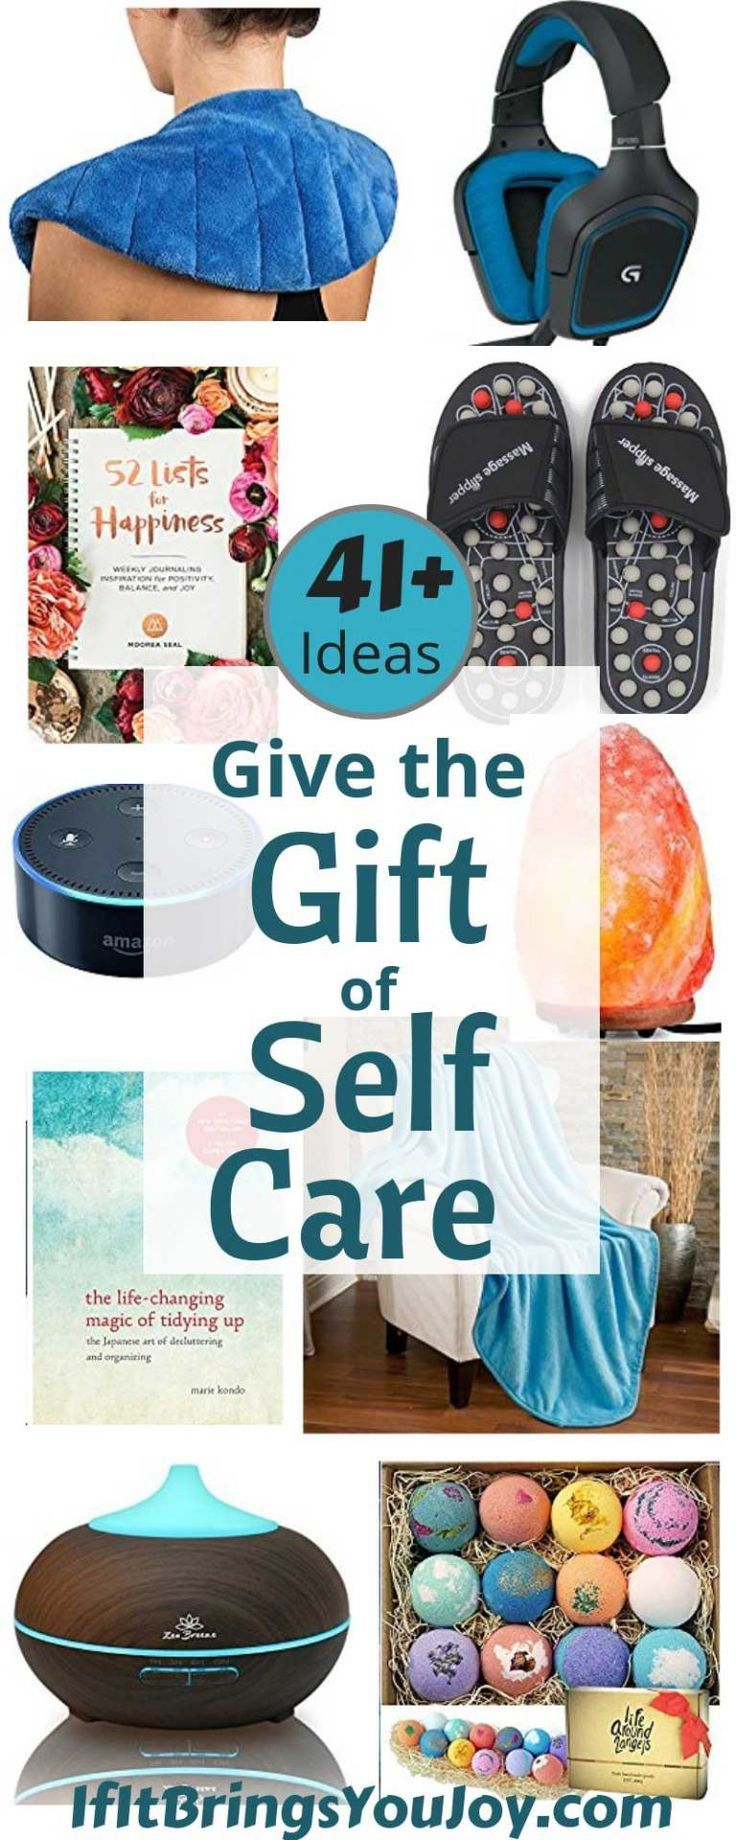 51+ BudgetFriendly SelfCare Gift Ideas For Relaxation